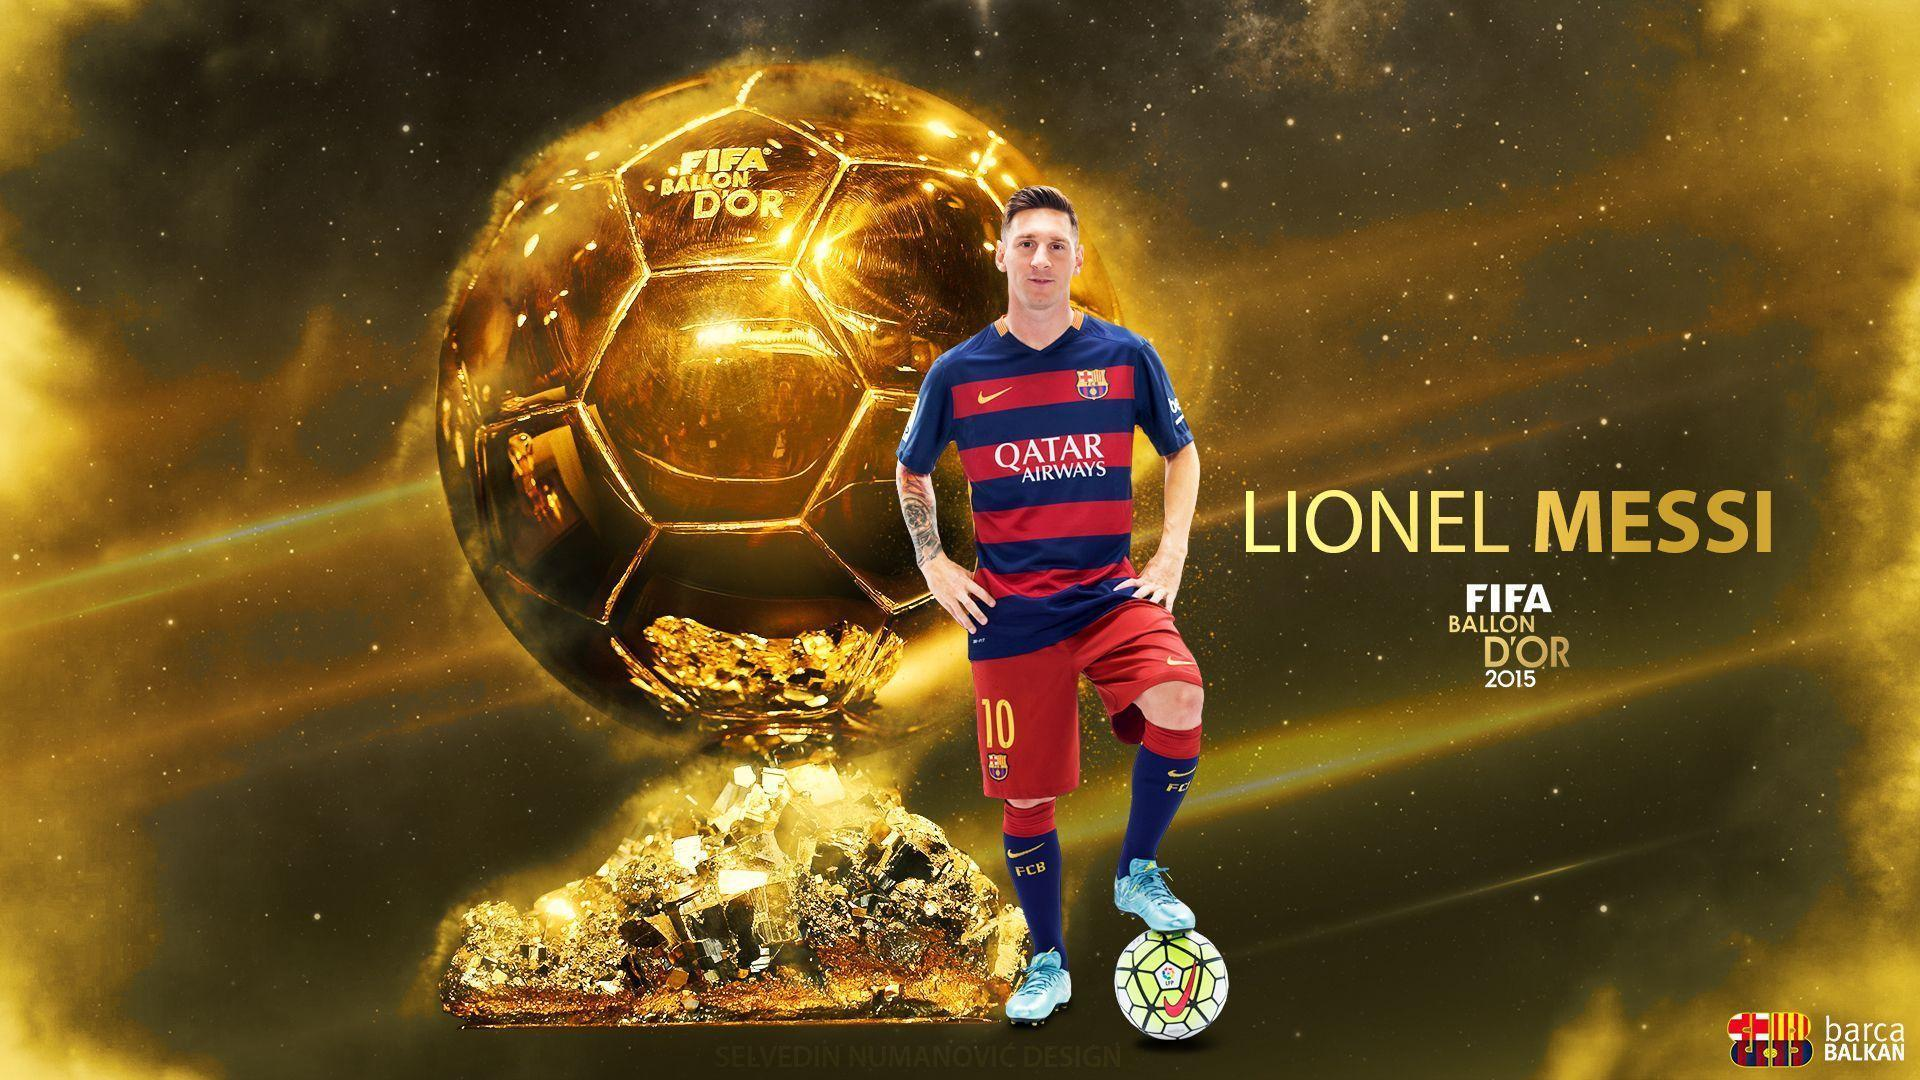 Lionel Messi 2016 Wallpapers HD 1080p 1920x1080